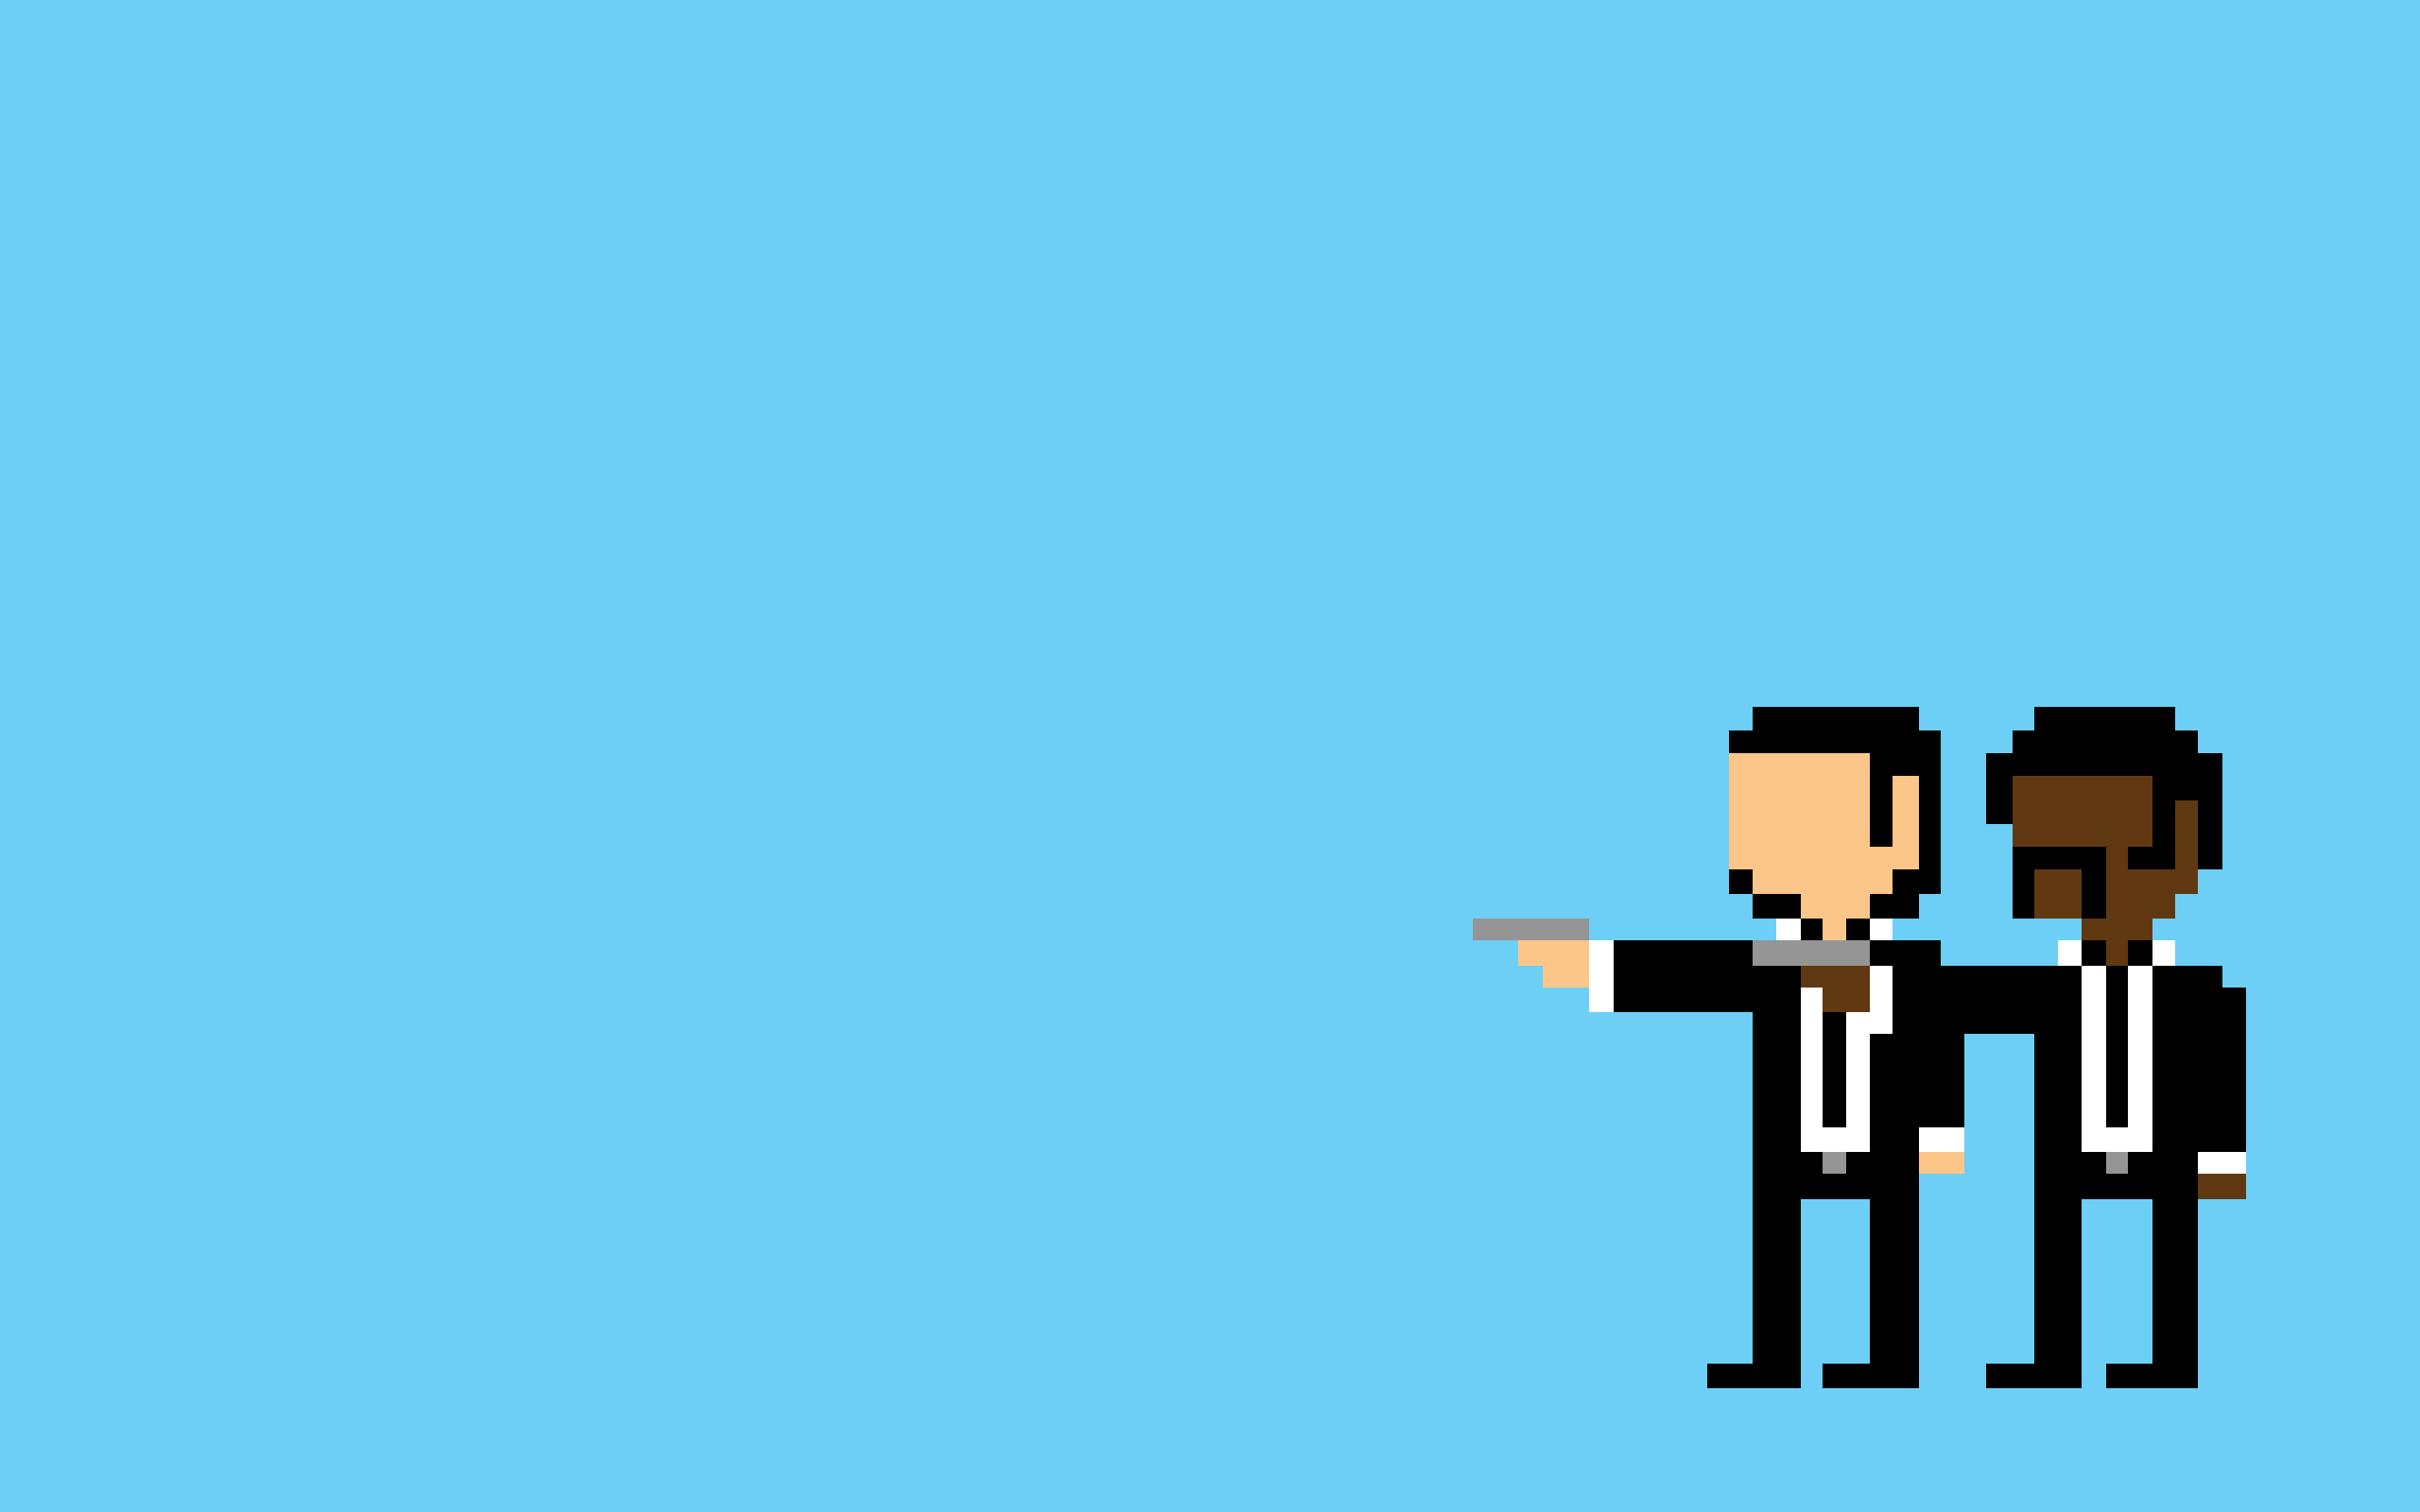 Pulp Pixel Wallpapers Wallpapers Pictures Piccit 2560x1600